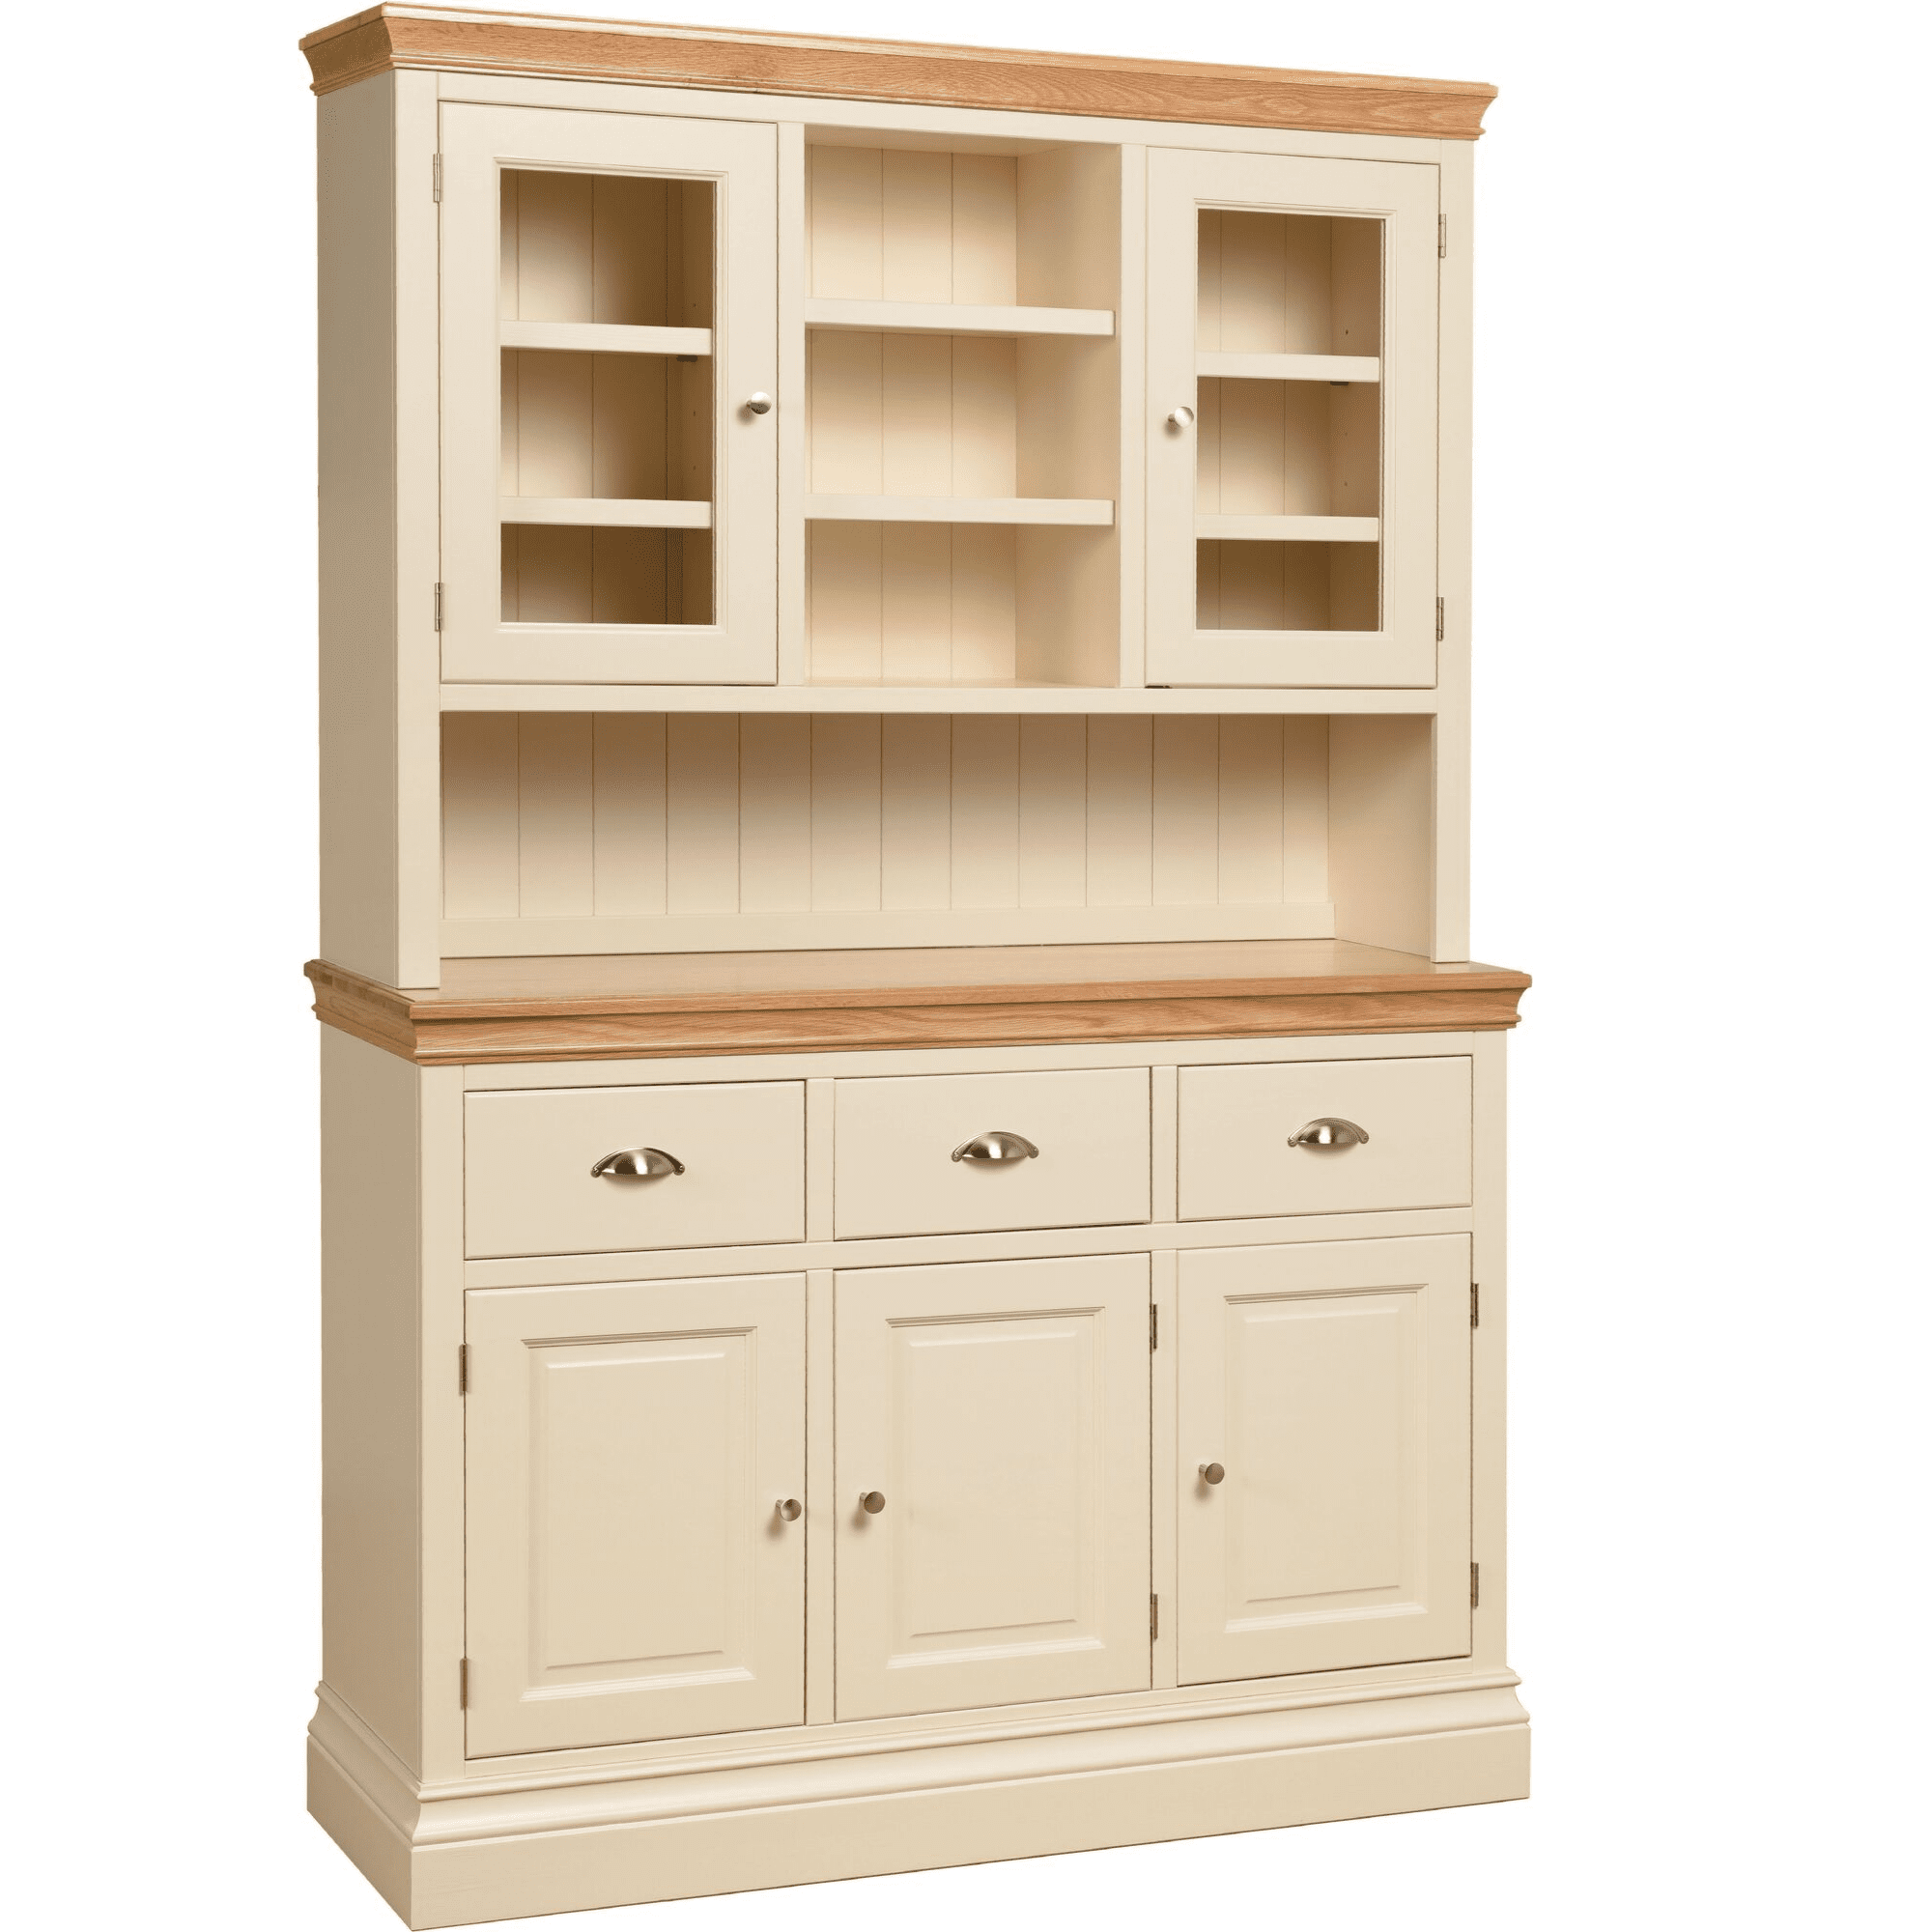 Lundy painted 4'6 glazed top dresser with space in middle rack. 3 drawers